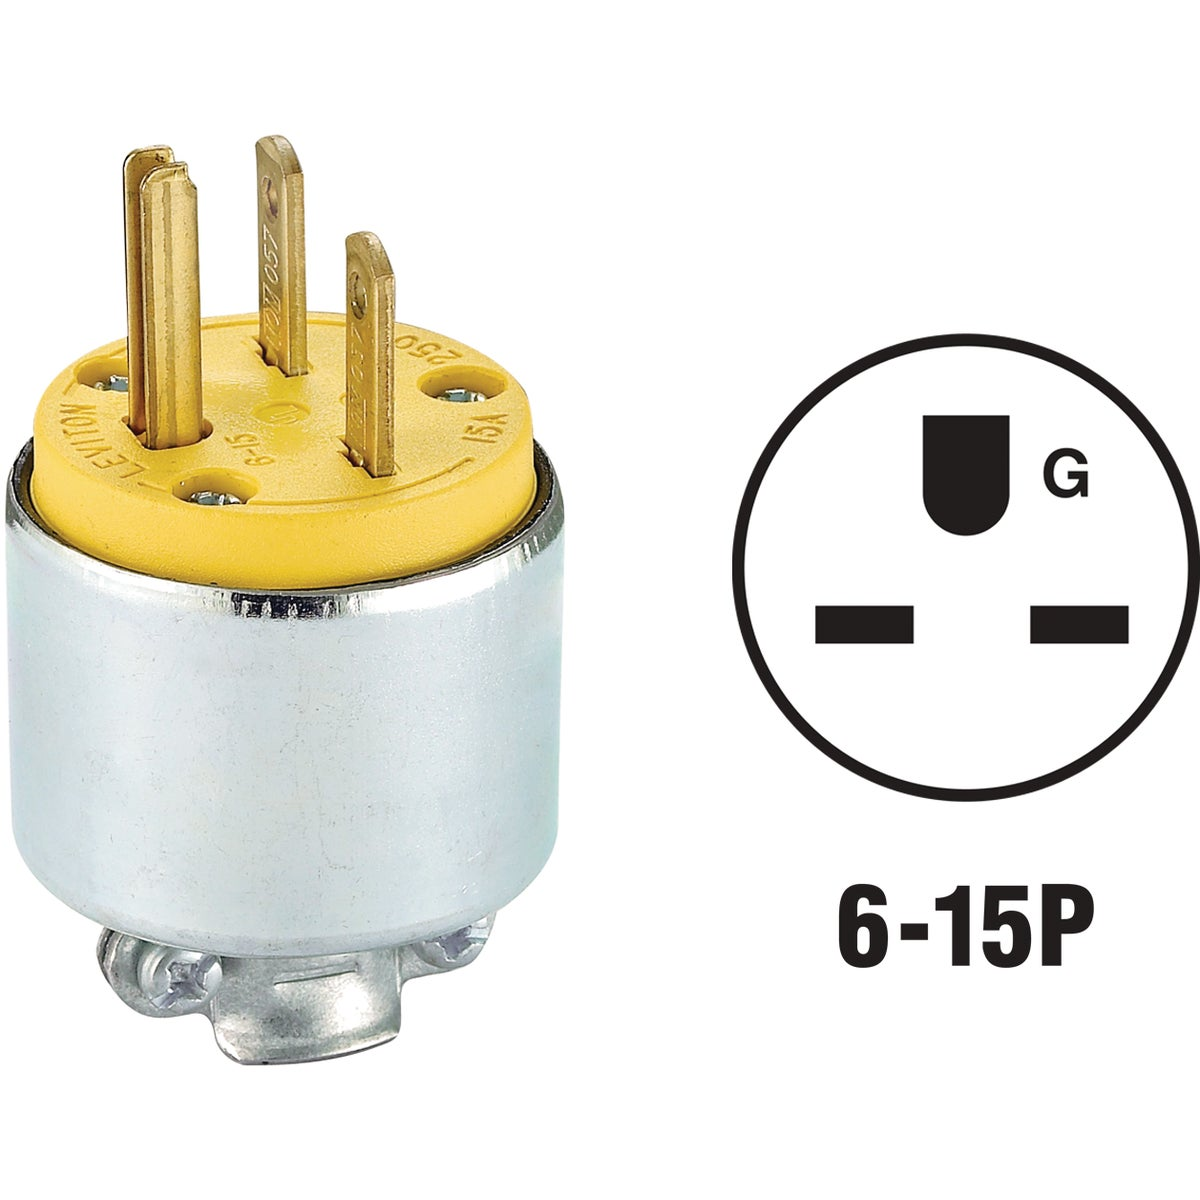 YEL ARMORED PLUG - 615PA by Leviton Mfg Co